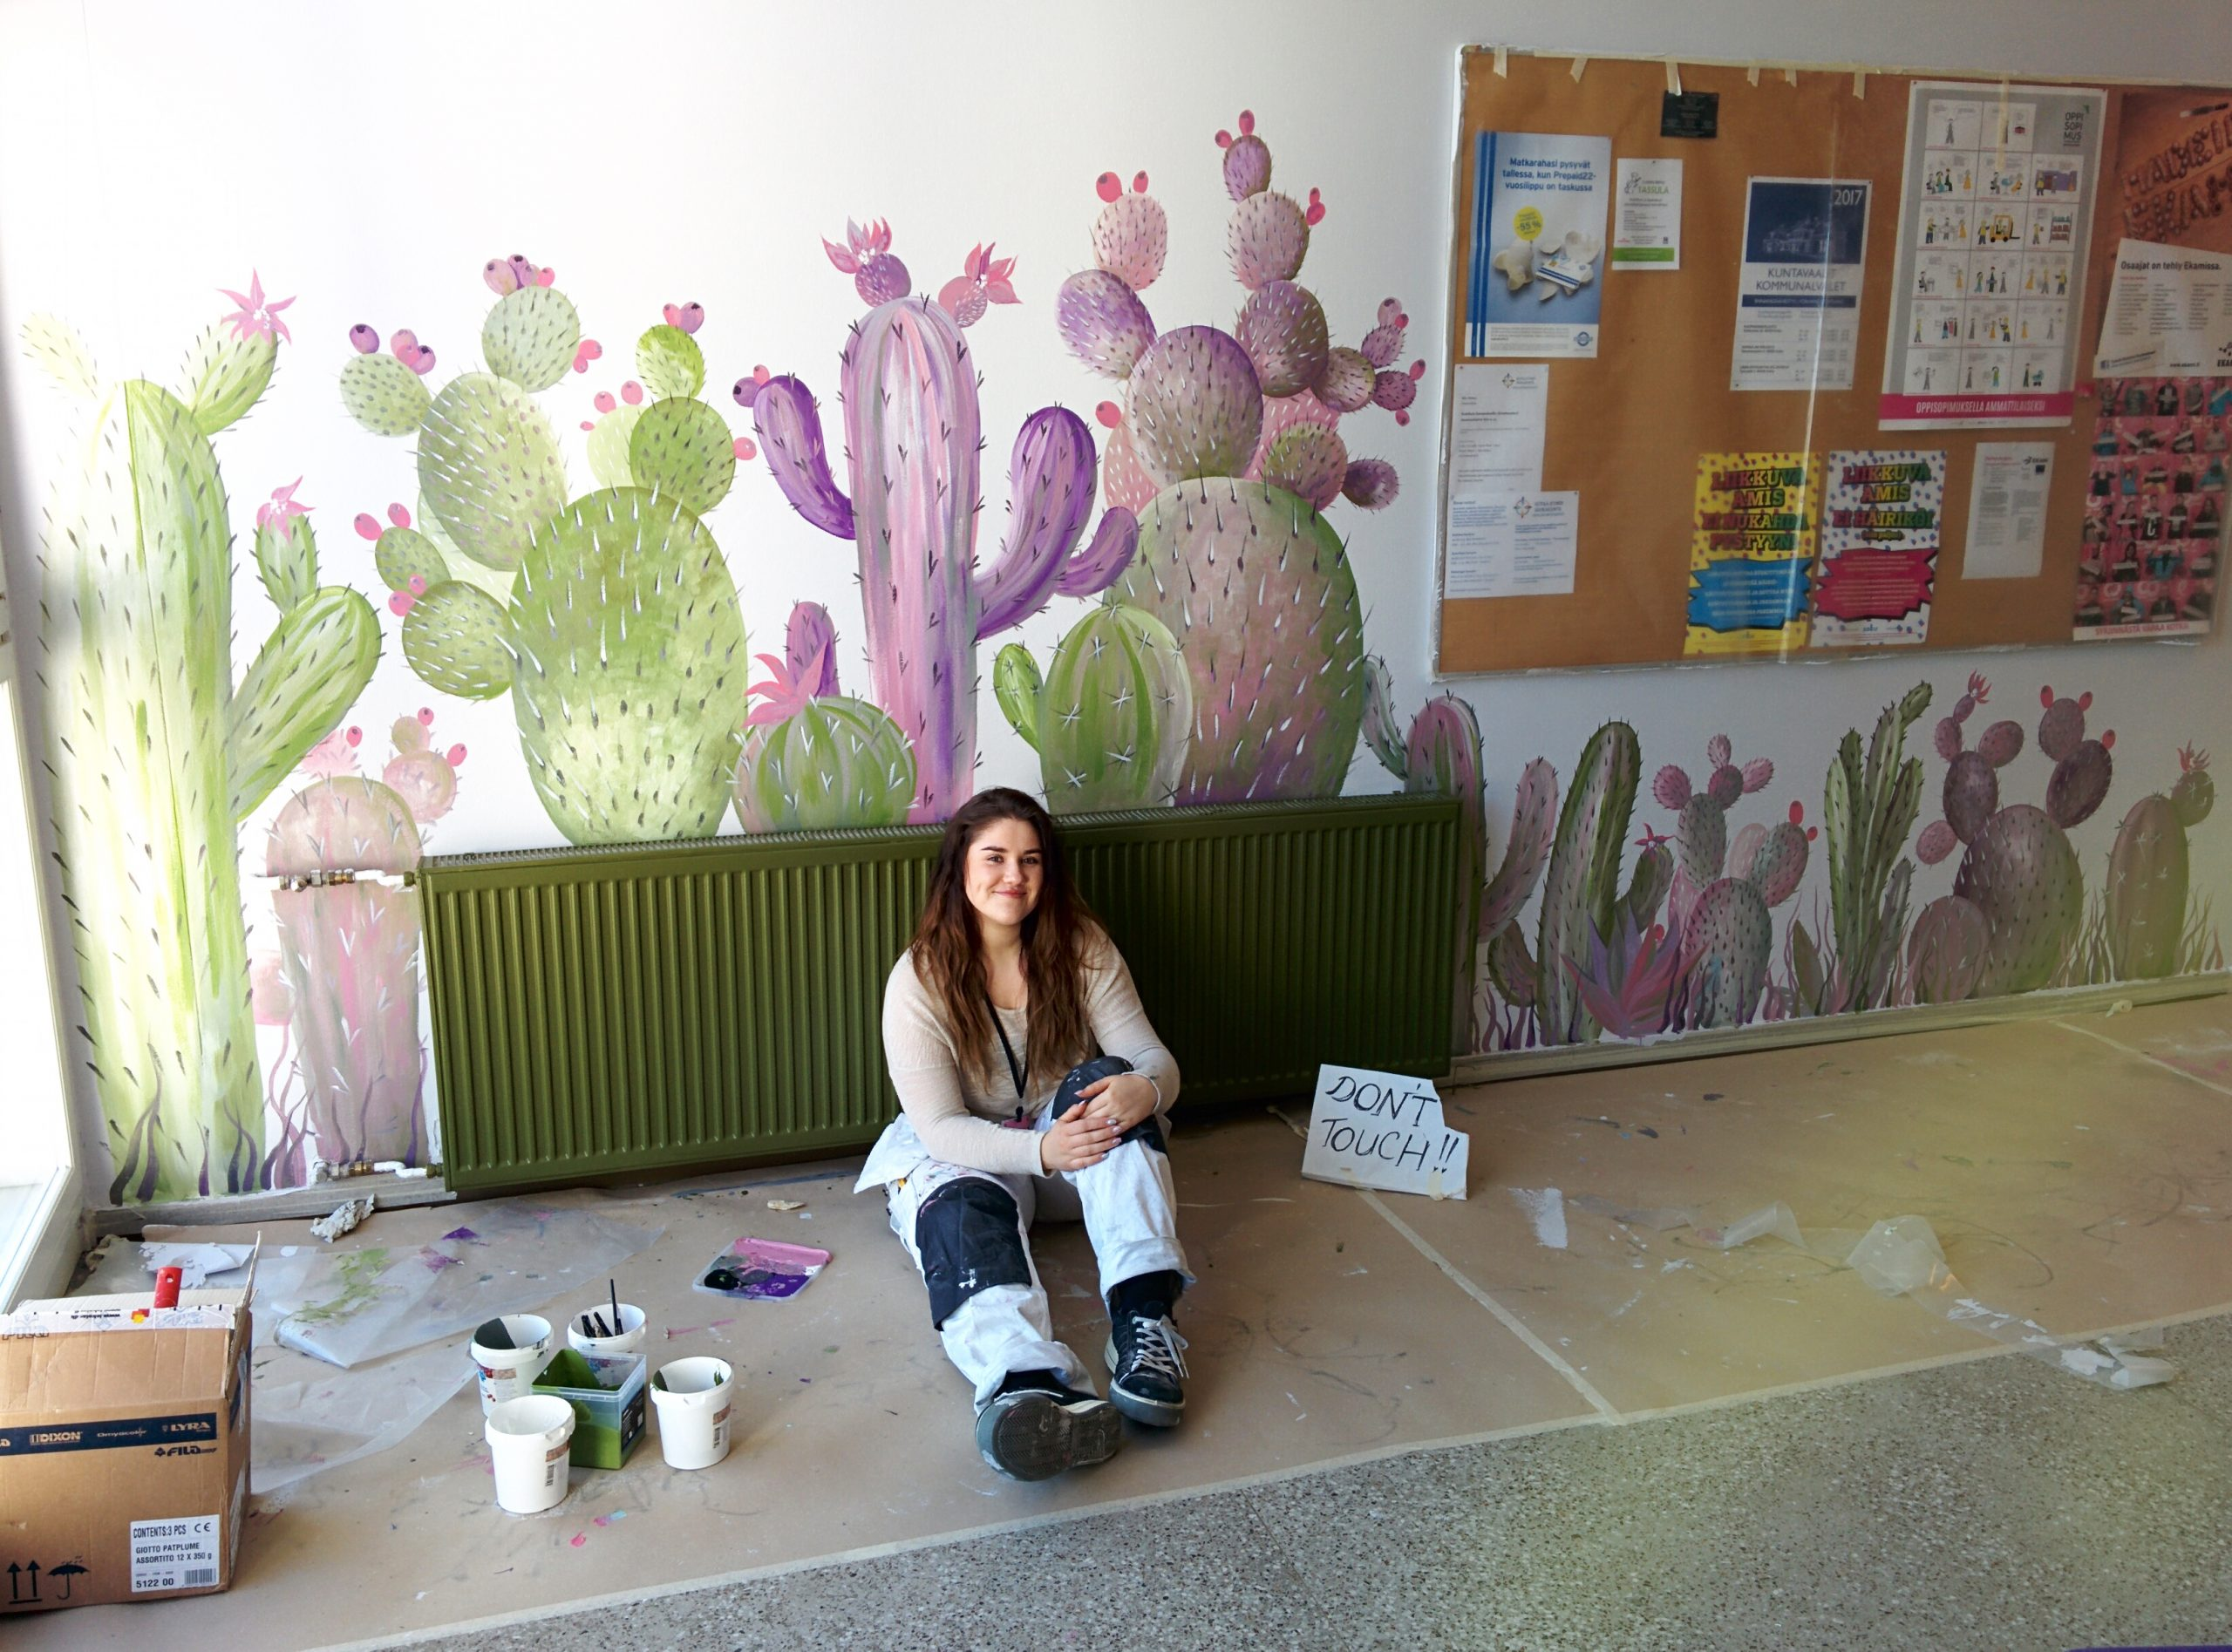 Ocean sitting on the floor near a wall painted with blue and purple cacti